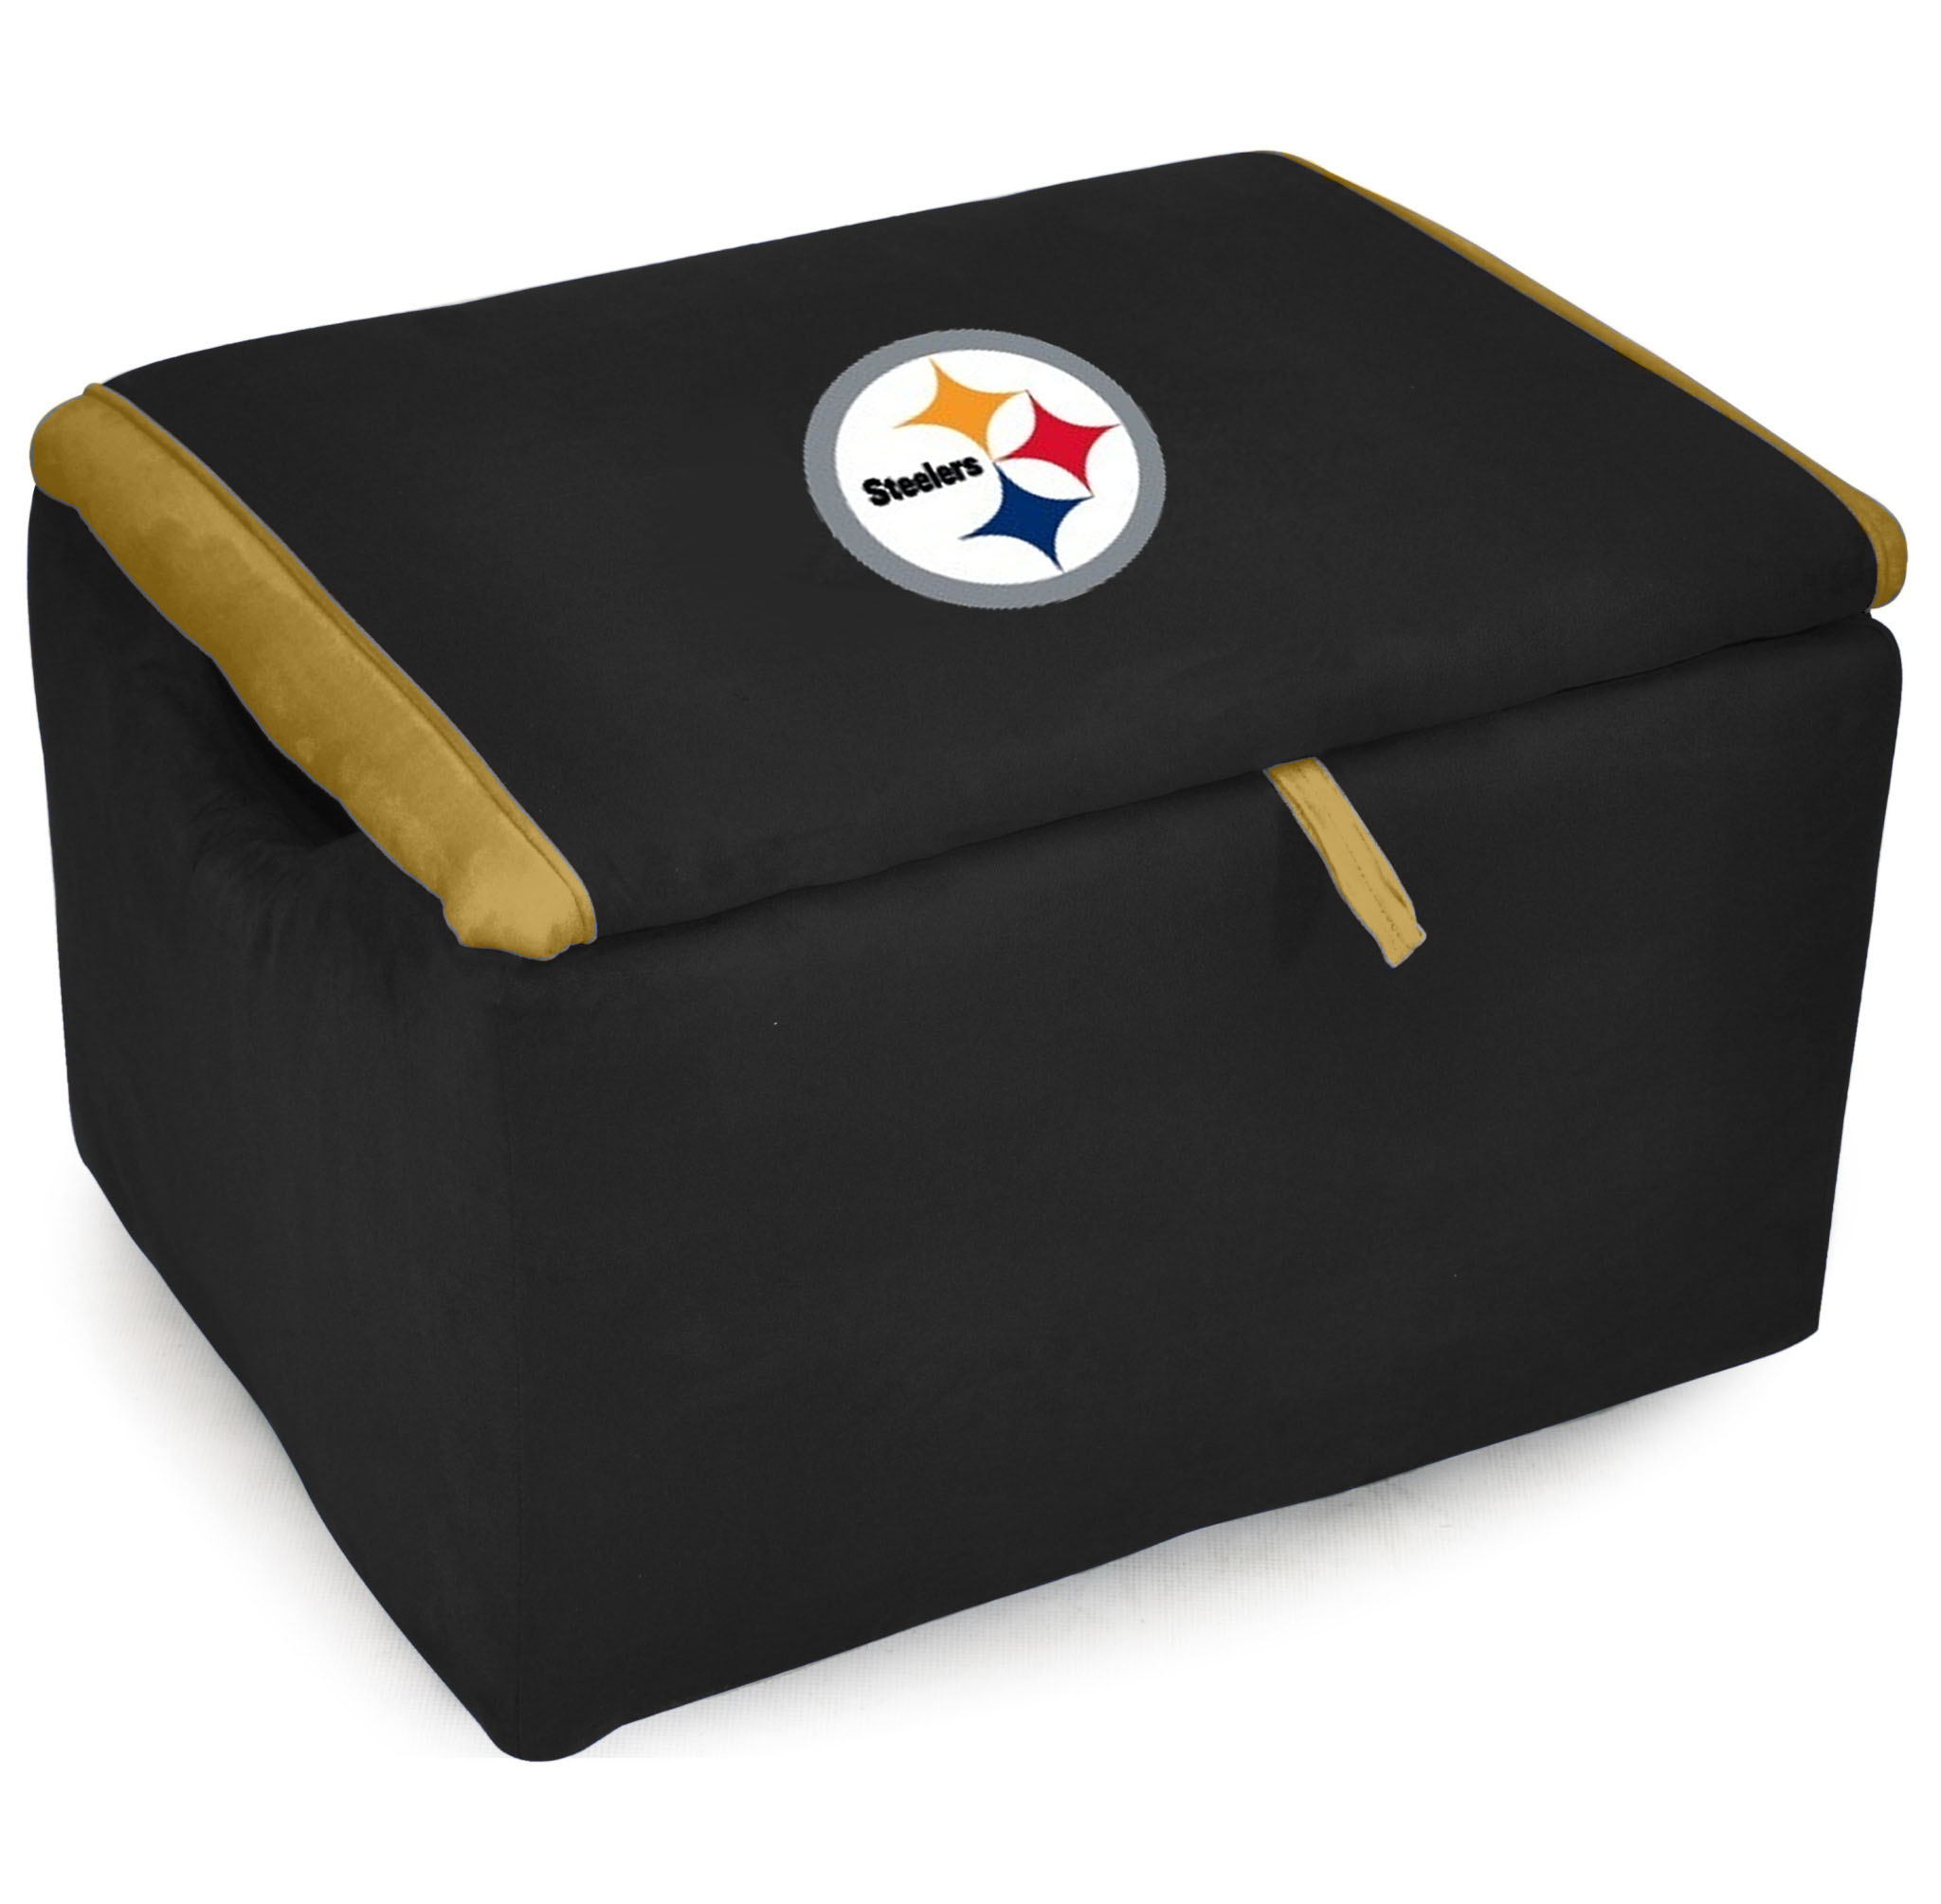 steelers-storage-bench